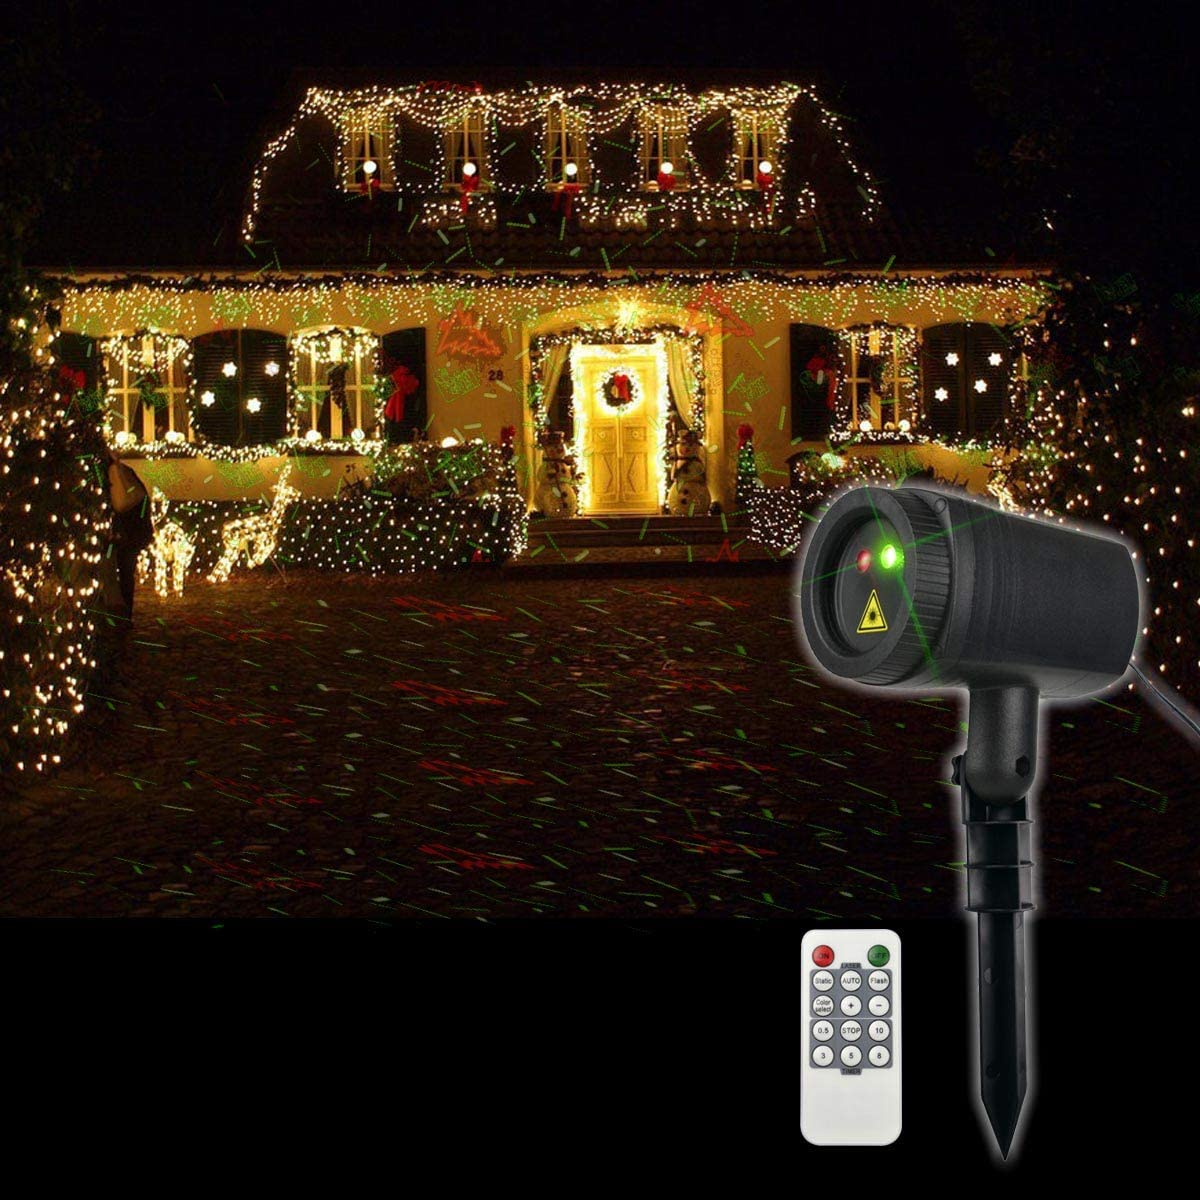 Christmas Laser Lights, 12 Patterns in 1 Laser Light Indoor Outdoor Christmas Laser Light with RF Remote Control for Hassle-Free Holiday Decorating Projector Lights, IP65 Waterproof